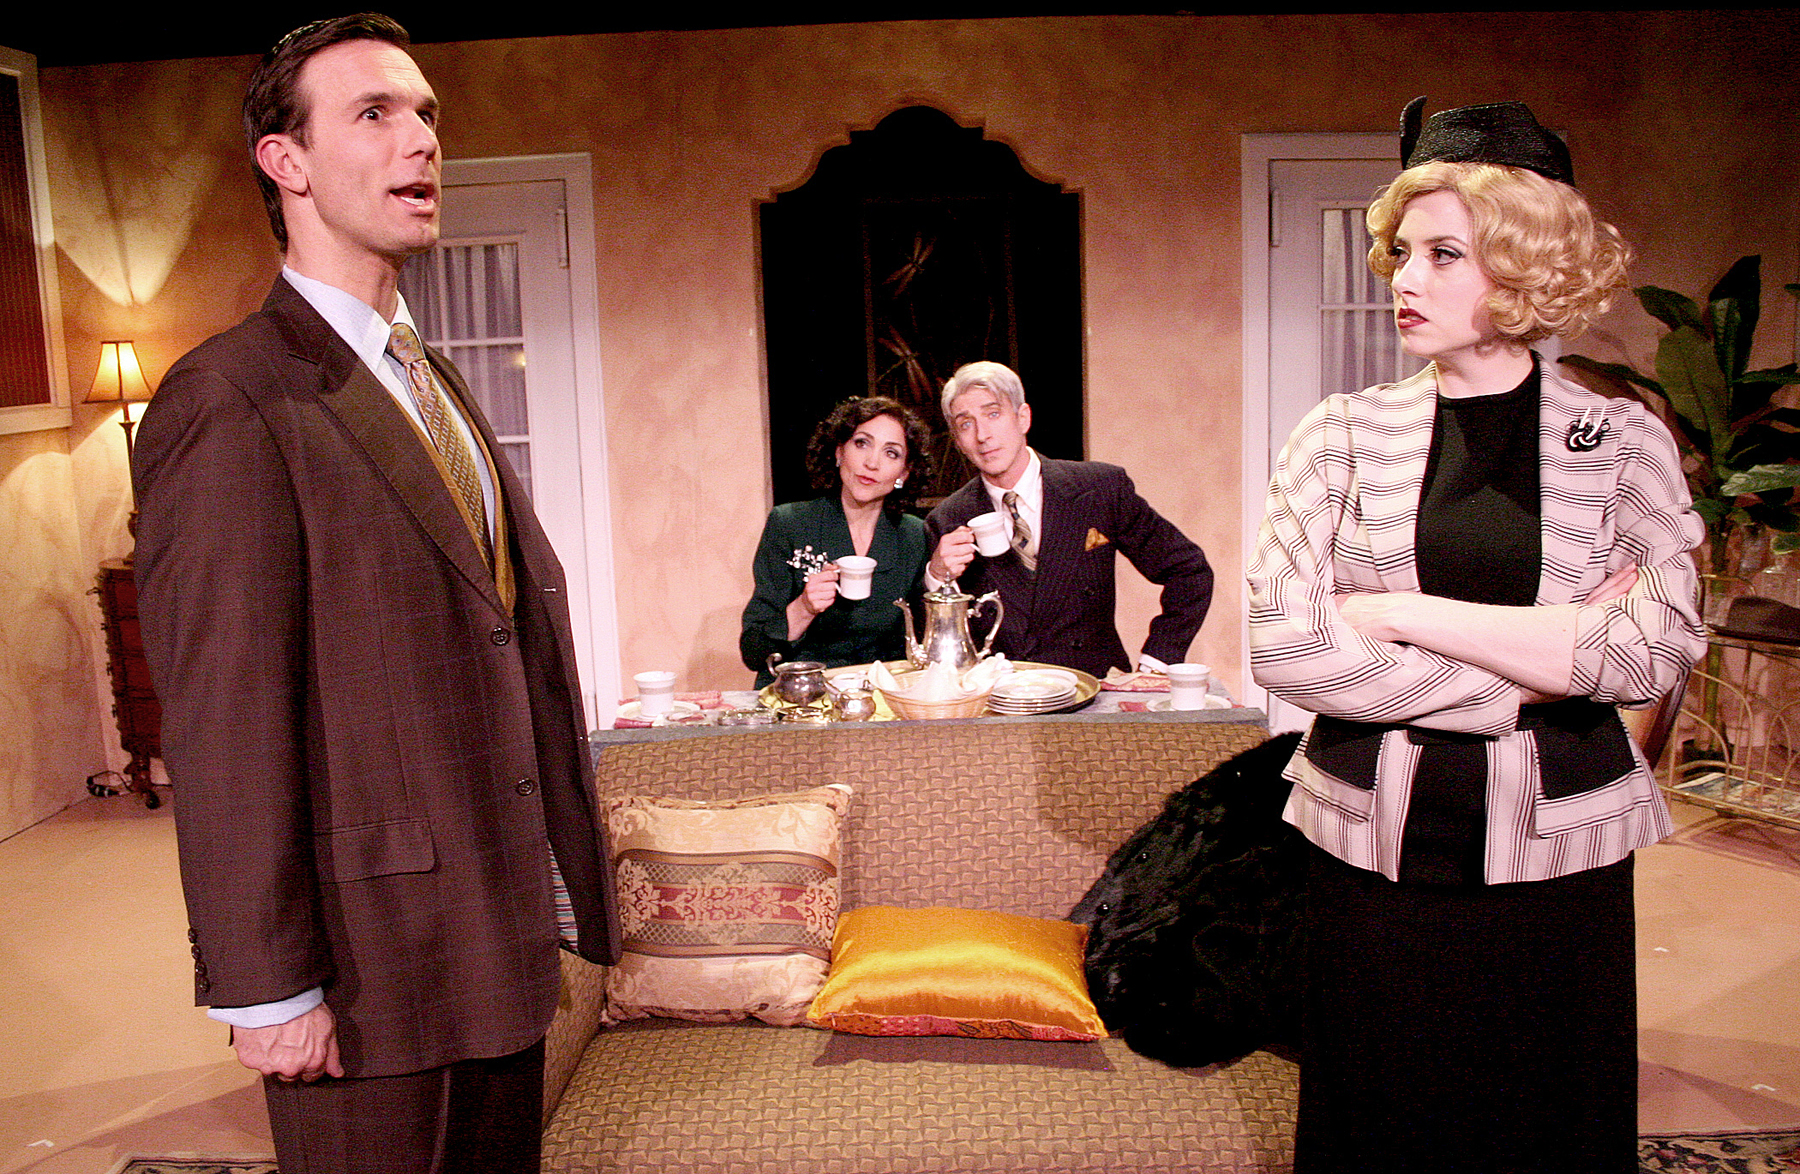 L to R: Jeff Witzke, Stasha Surdyke, Lenny Von Dohlen, and Annie Abrams in PRIVATE LIVES. 